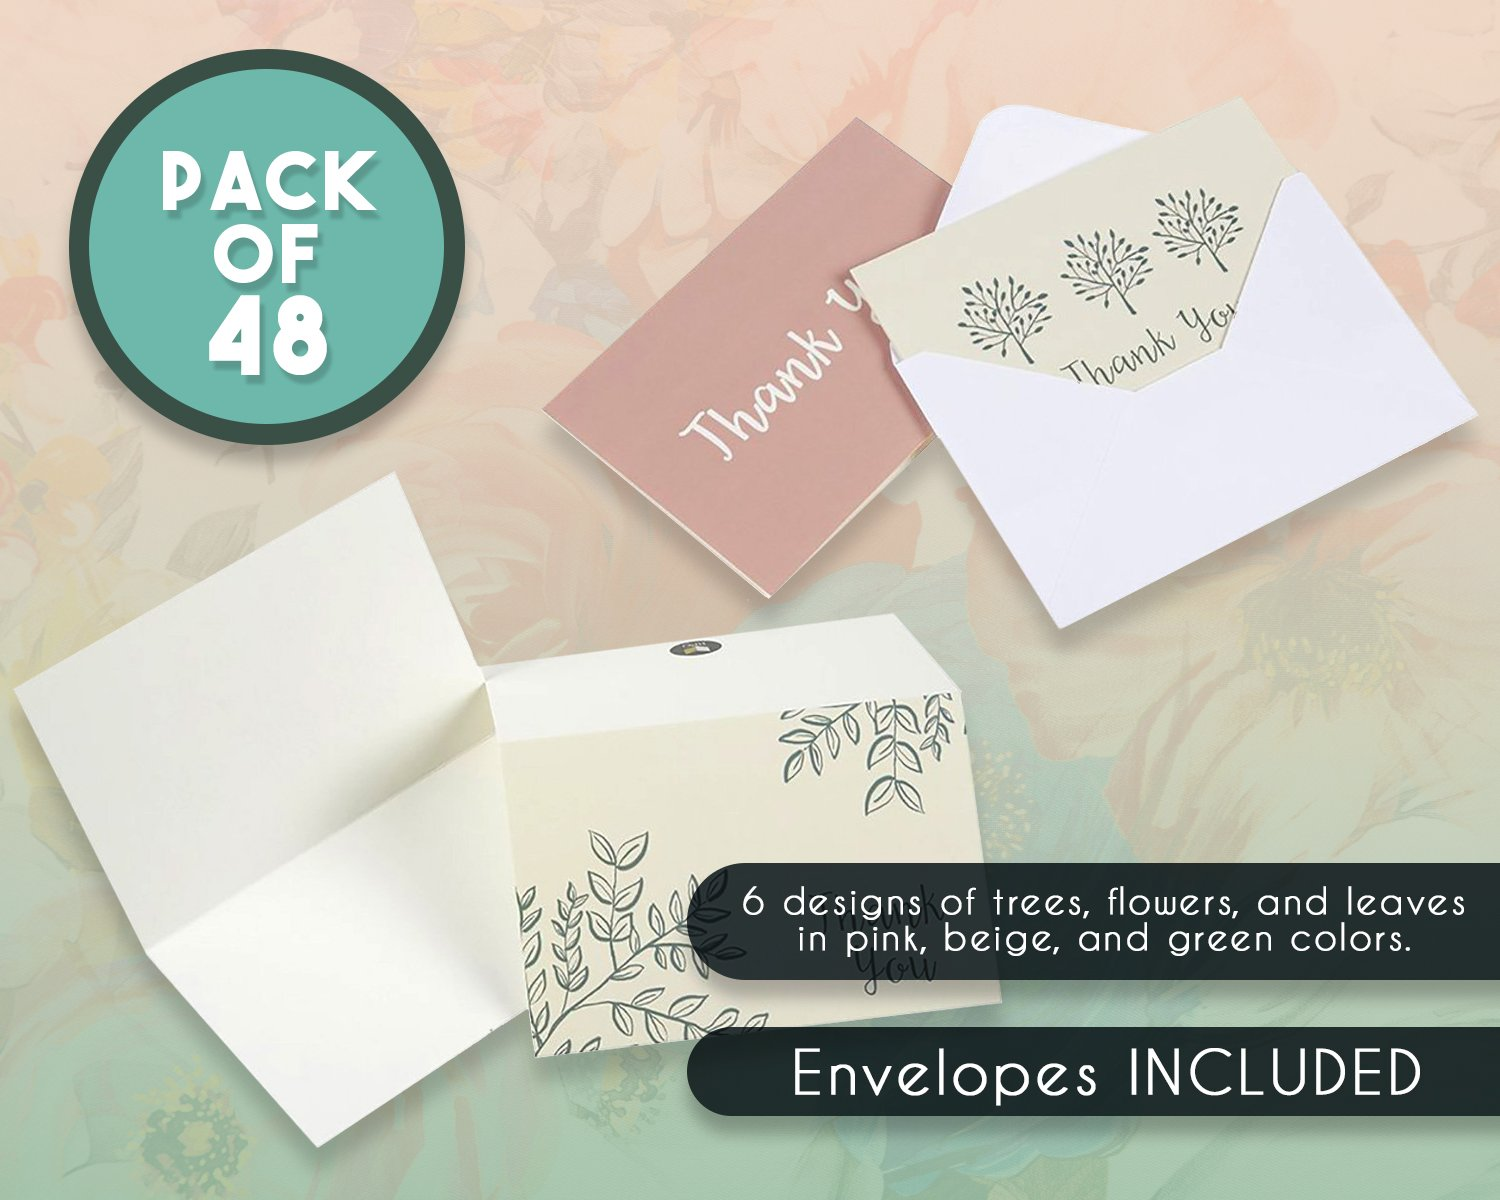 Cooloo Thank You Cards 50 Pack Bulk Thank You Card With Envelopes